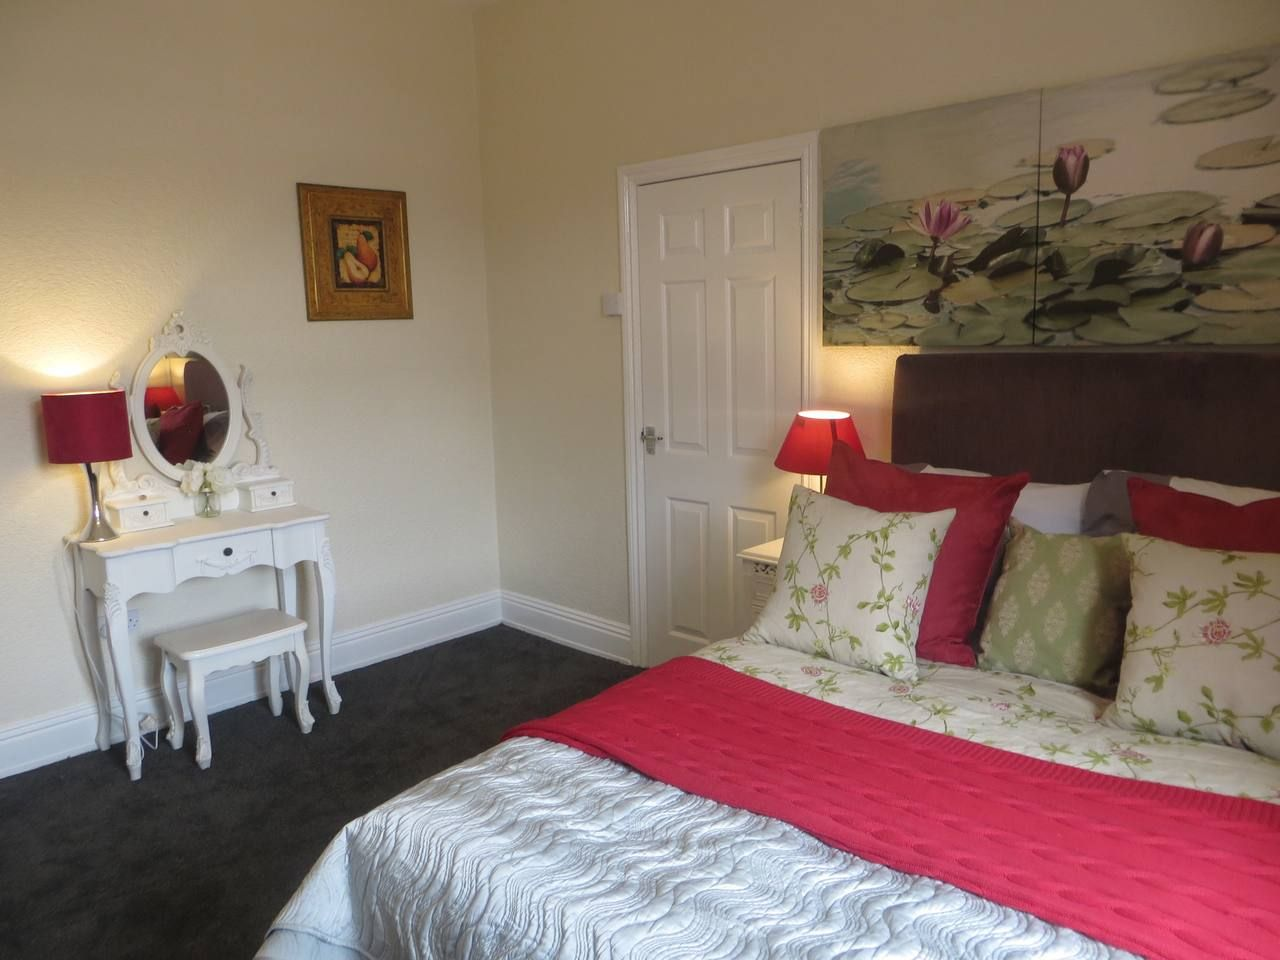 5 min walk from Winter Gardens, and town centre